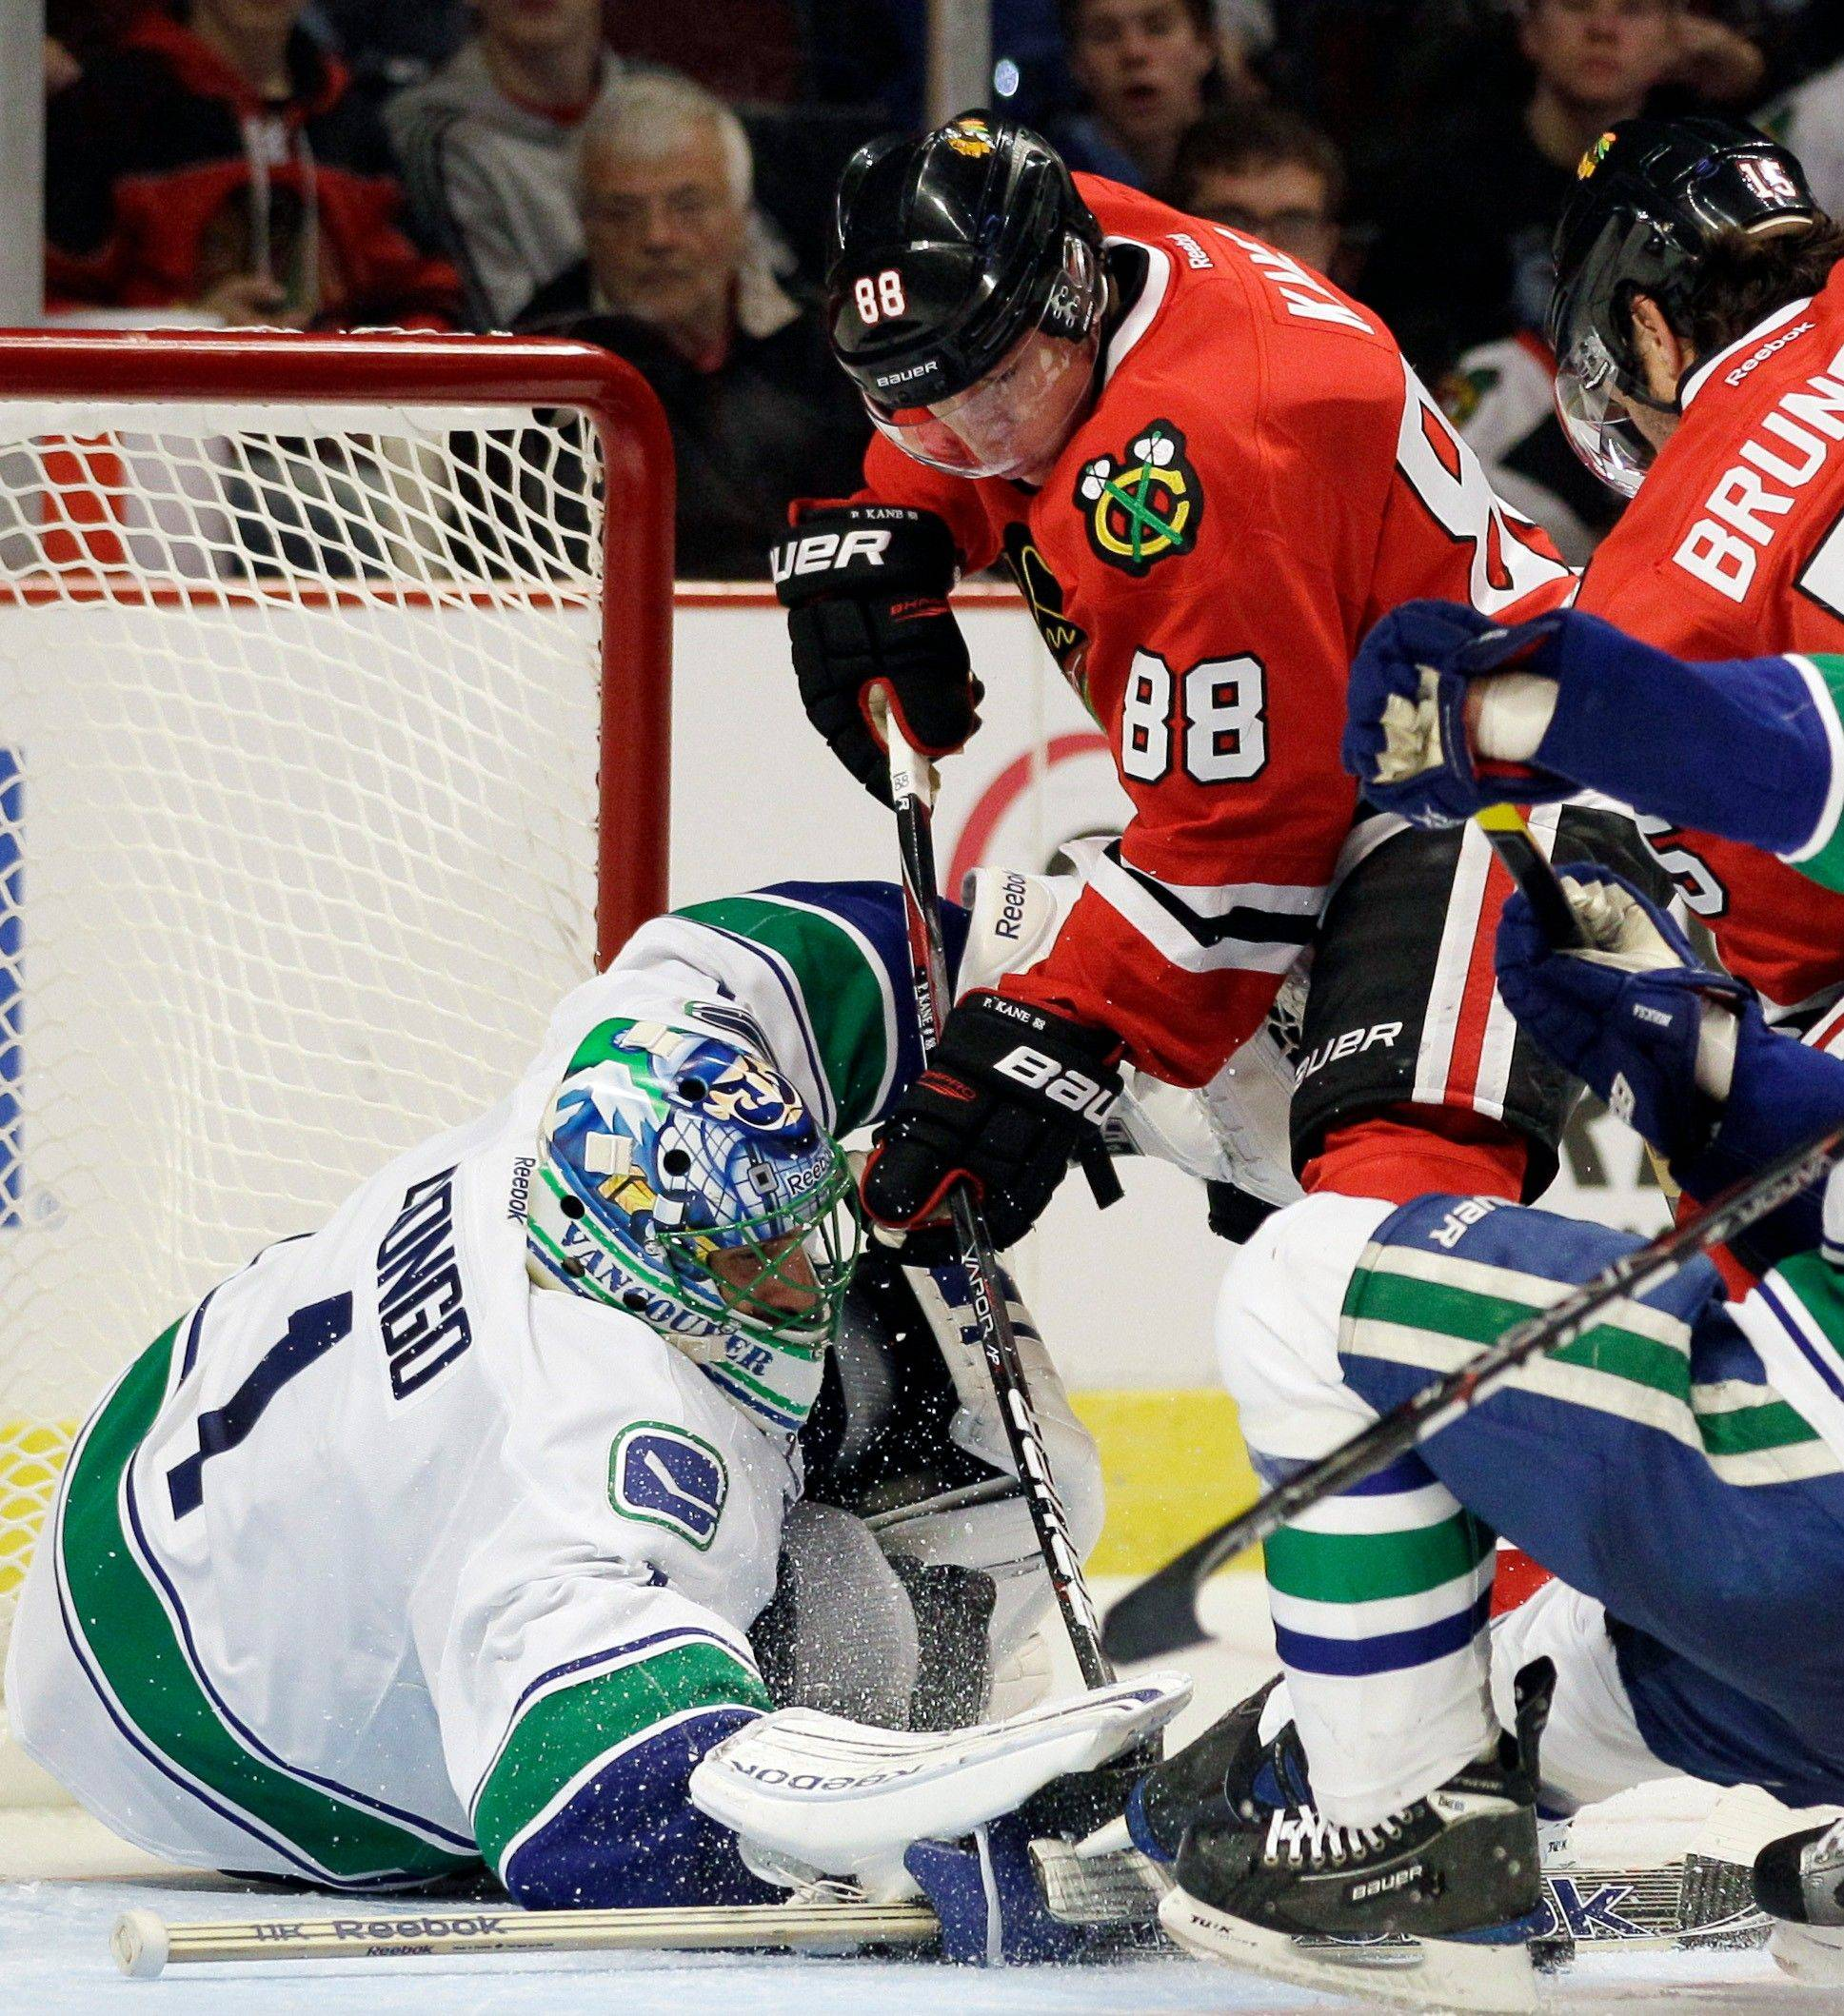 Canucks goalie Roberto Luongo saves a shot by the Blackhawks' Patrick Kane on Sunday night at the United Center.